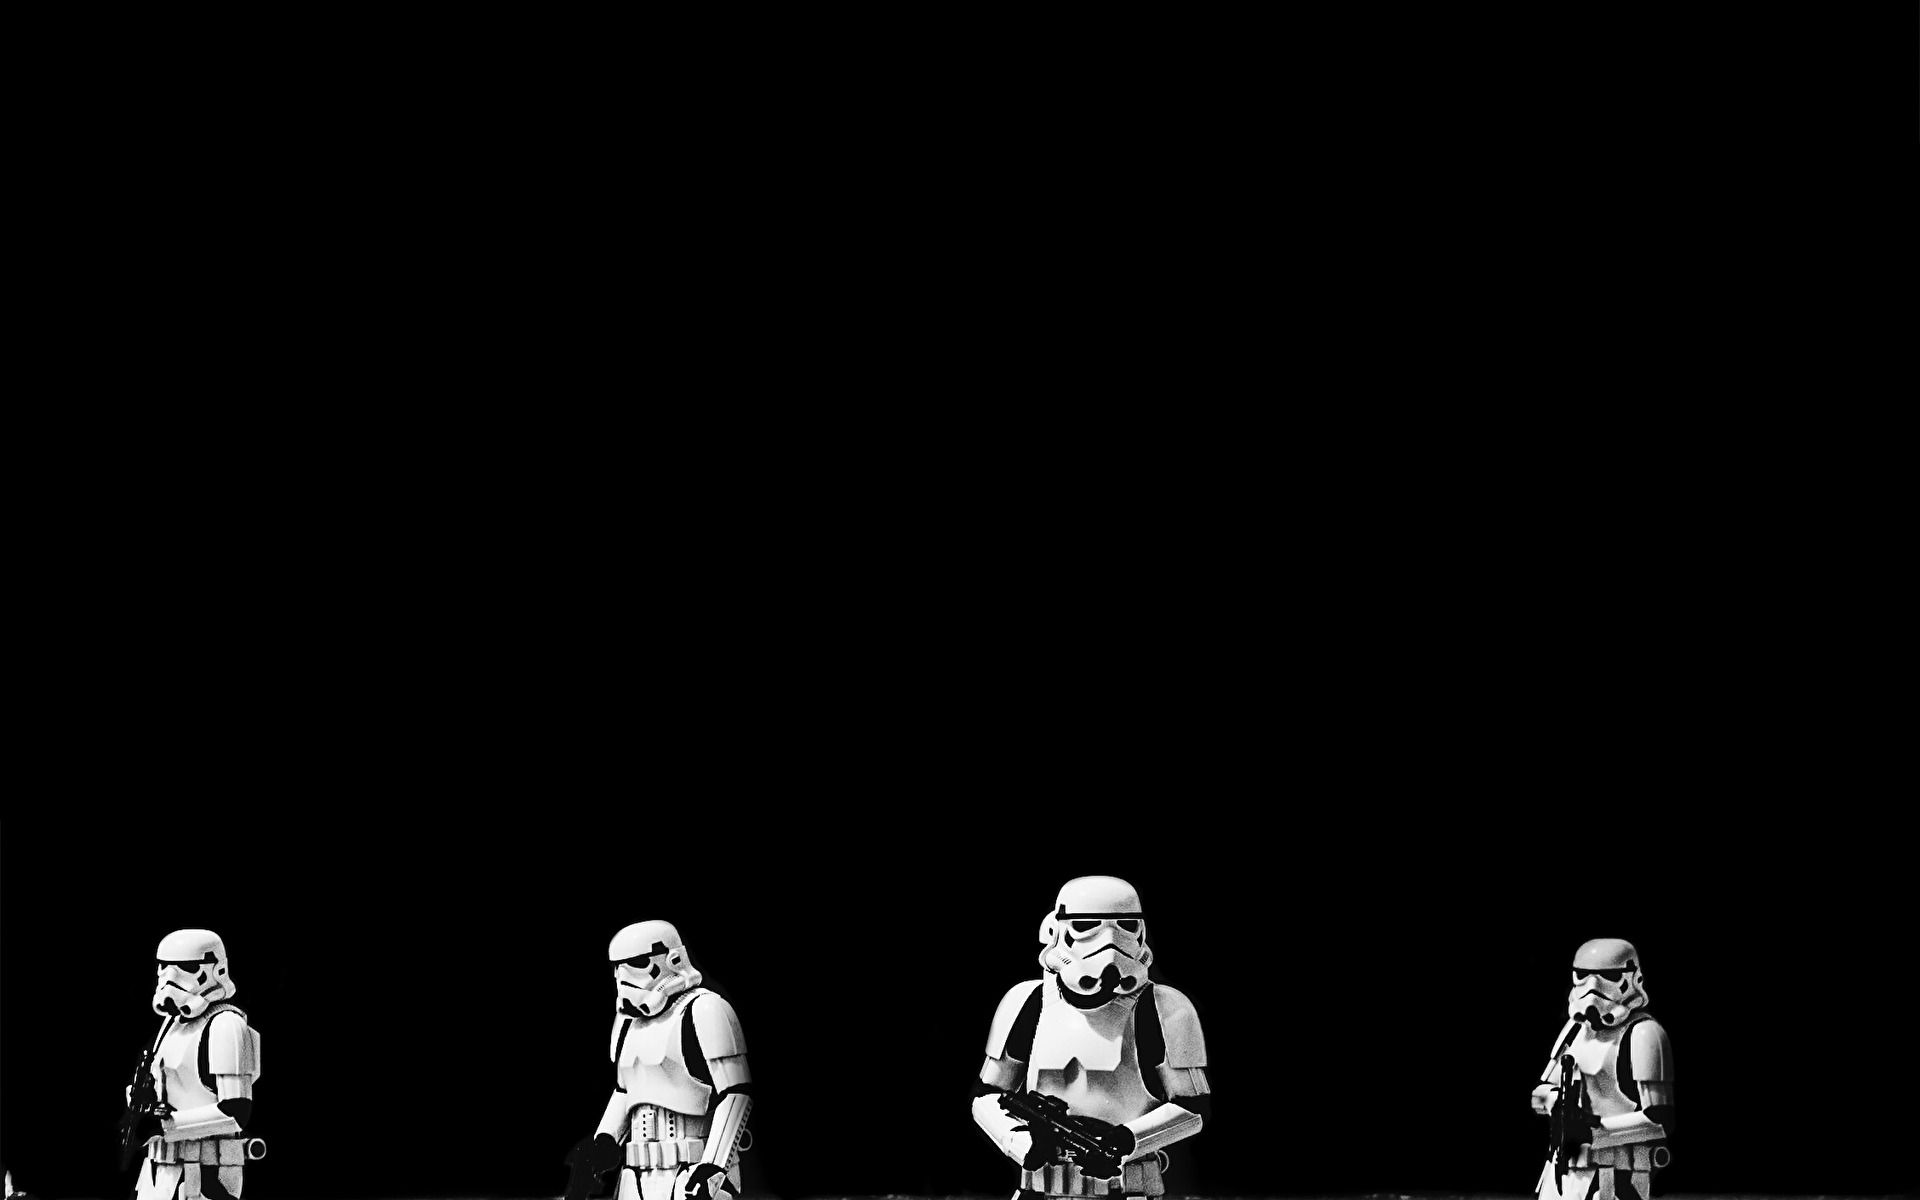 two perfect star wars wallpapers